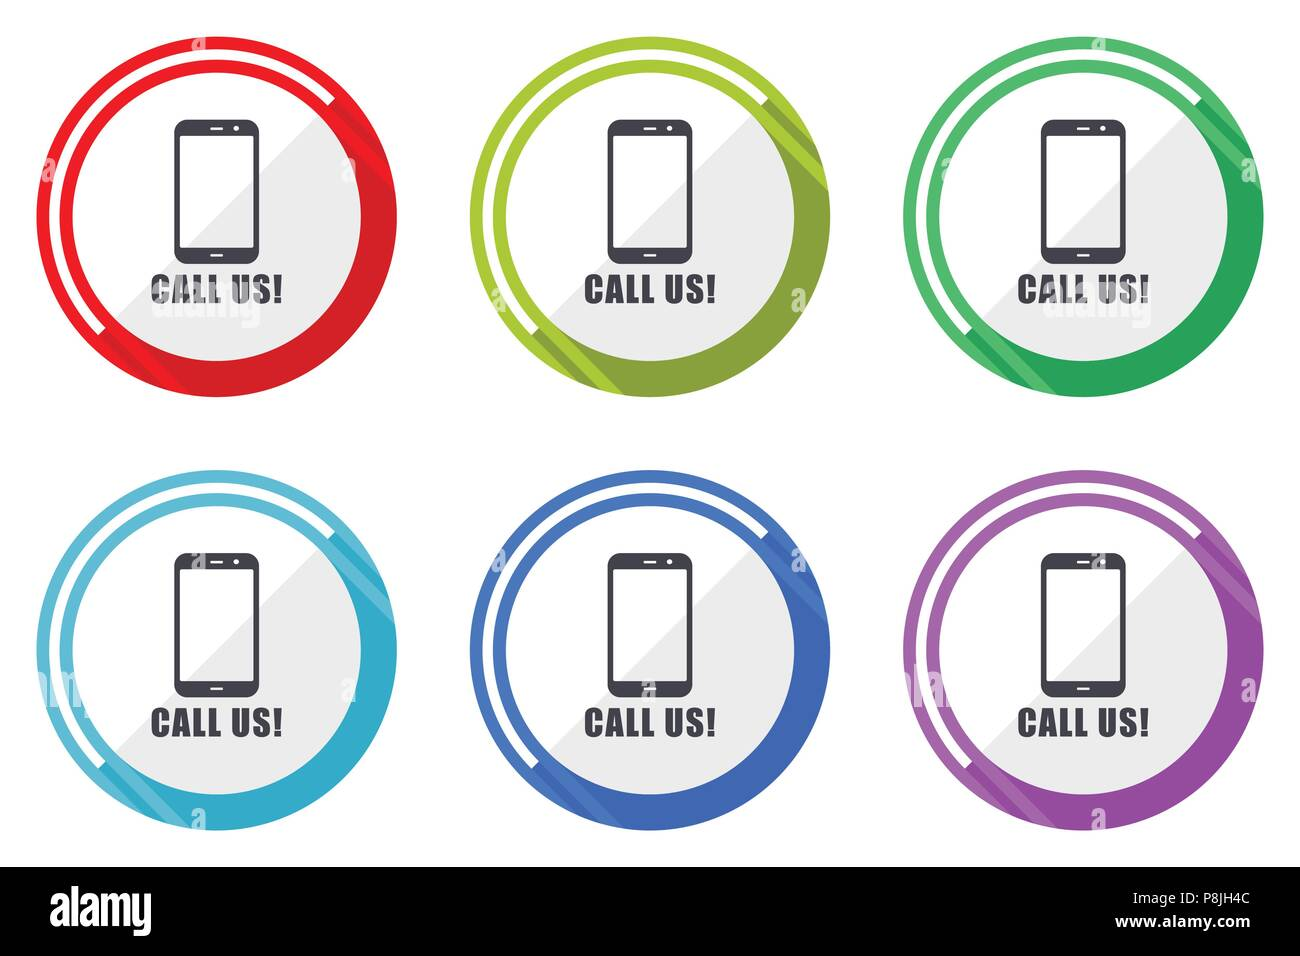 Call Us Vector Icons Set Of Colorful Flat Design Internet Symbols